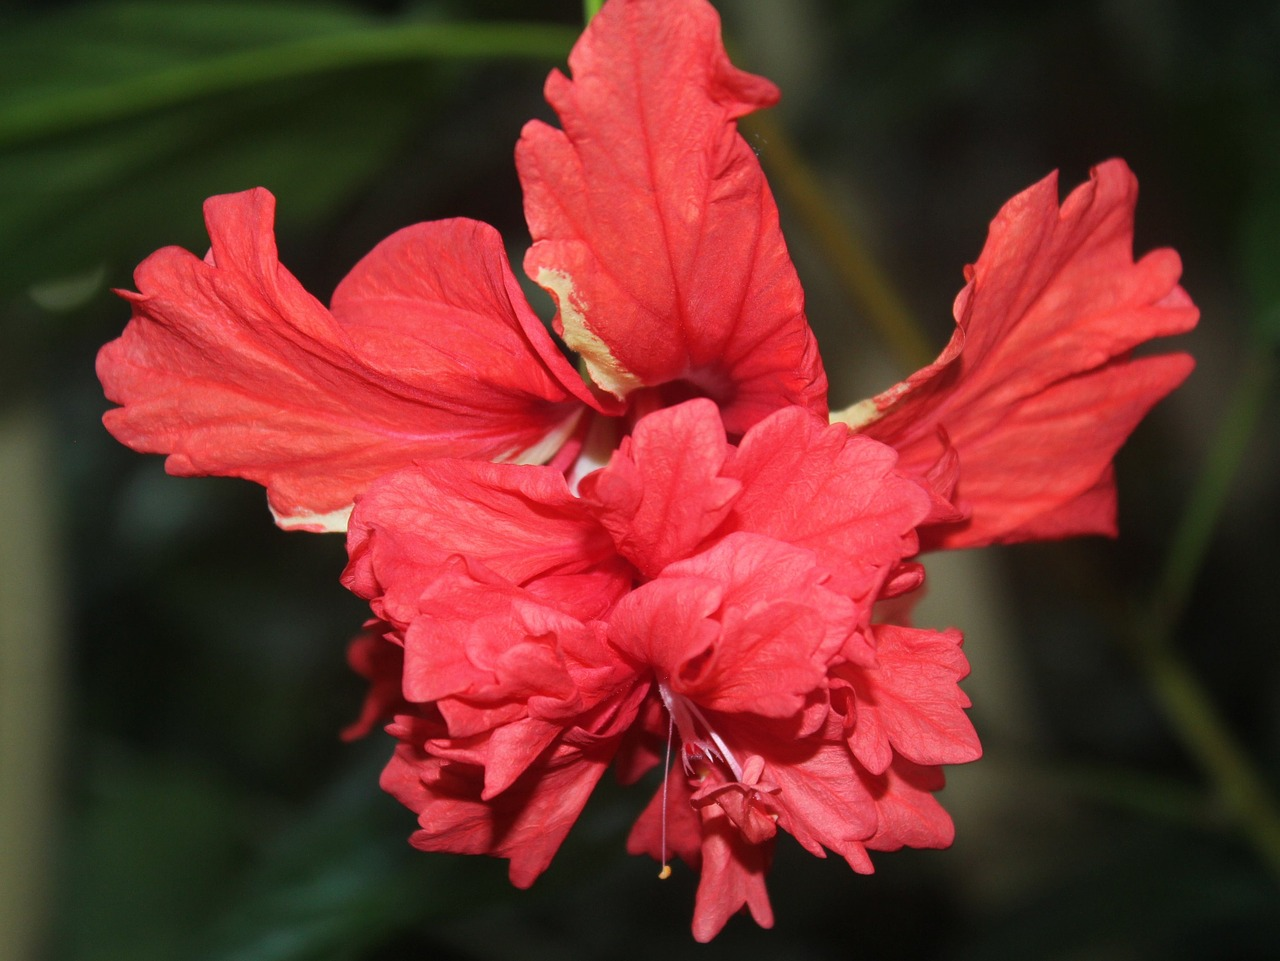 red flower beautiful free photo